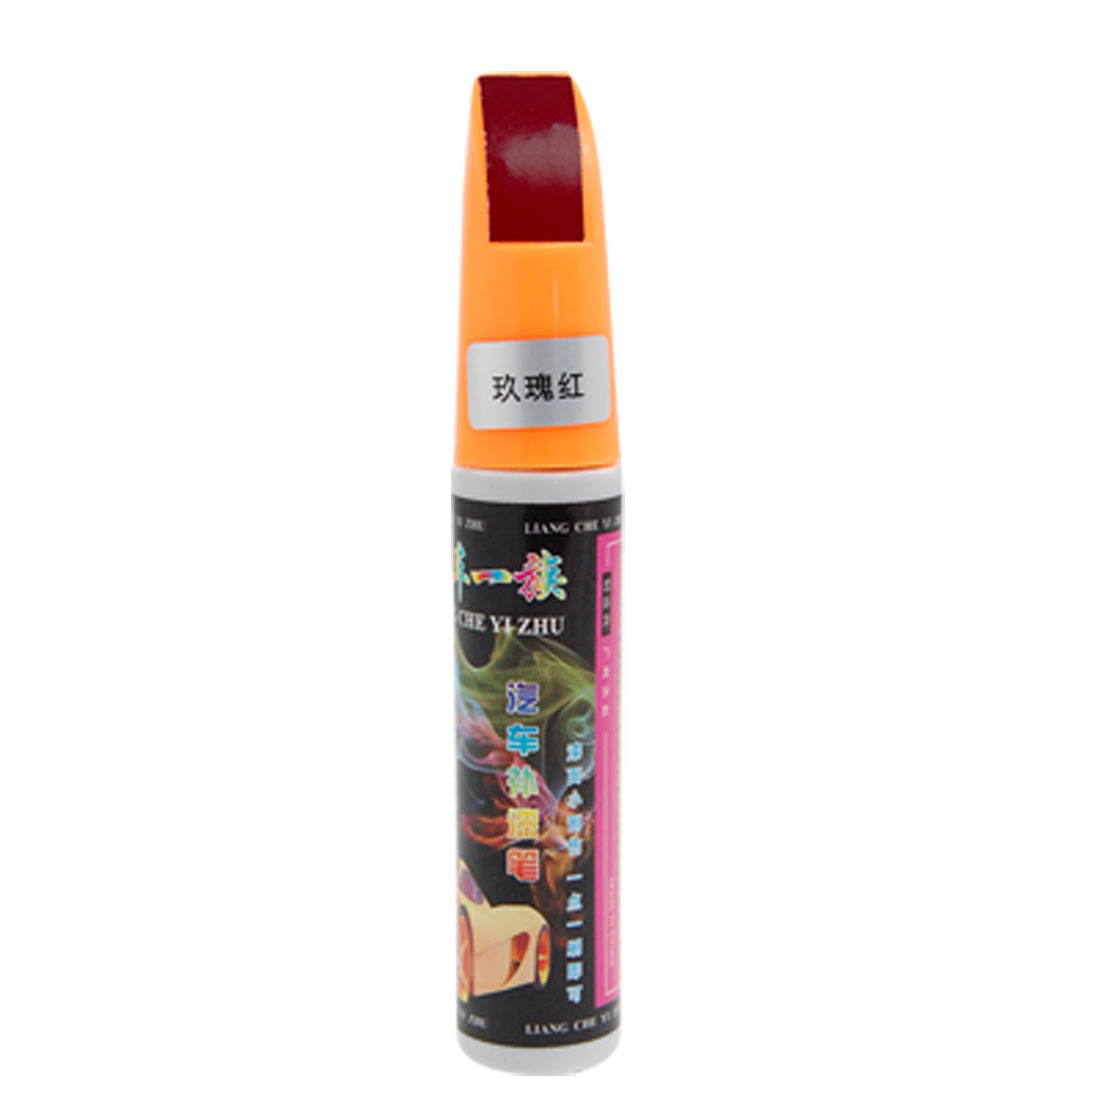 12ml Rose Red Scratches Repair Touch up Paint Pen for Vehicle Car